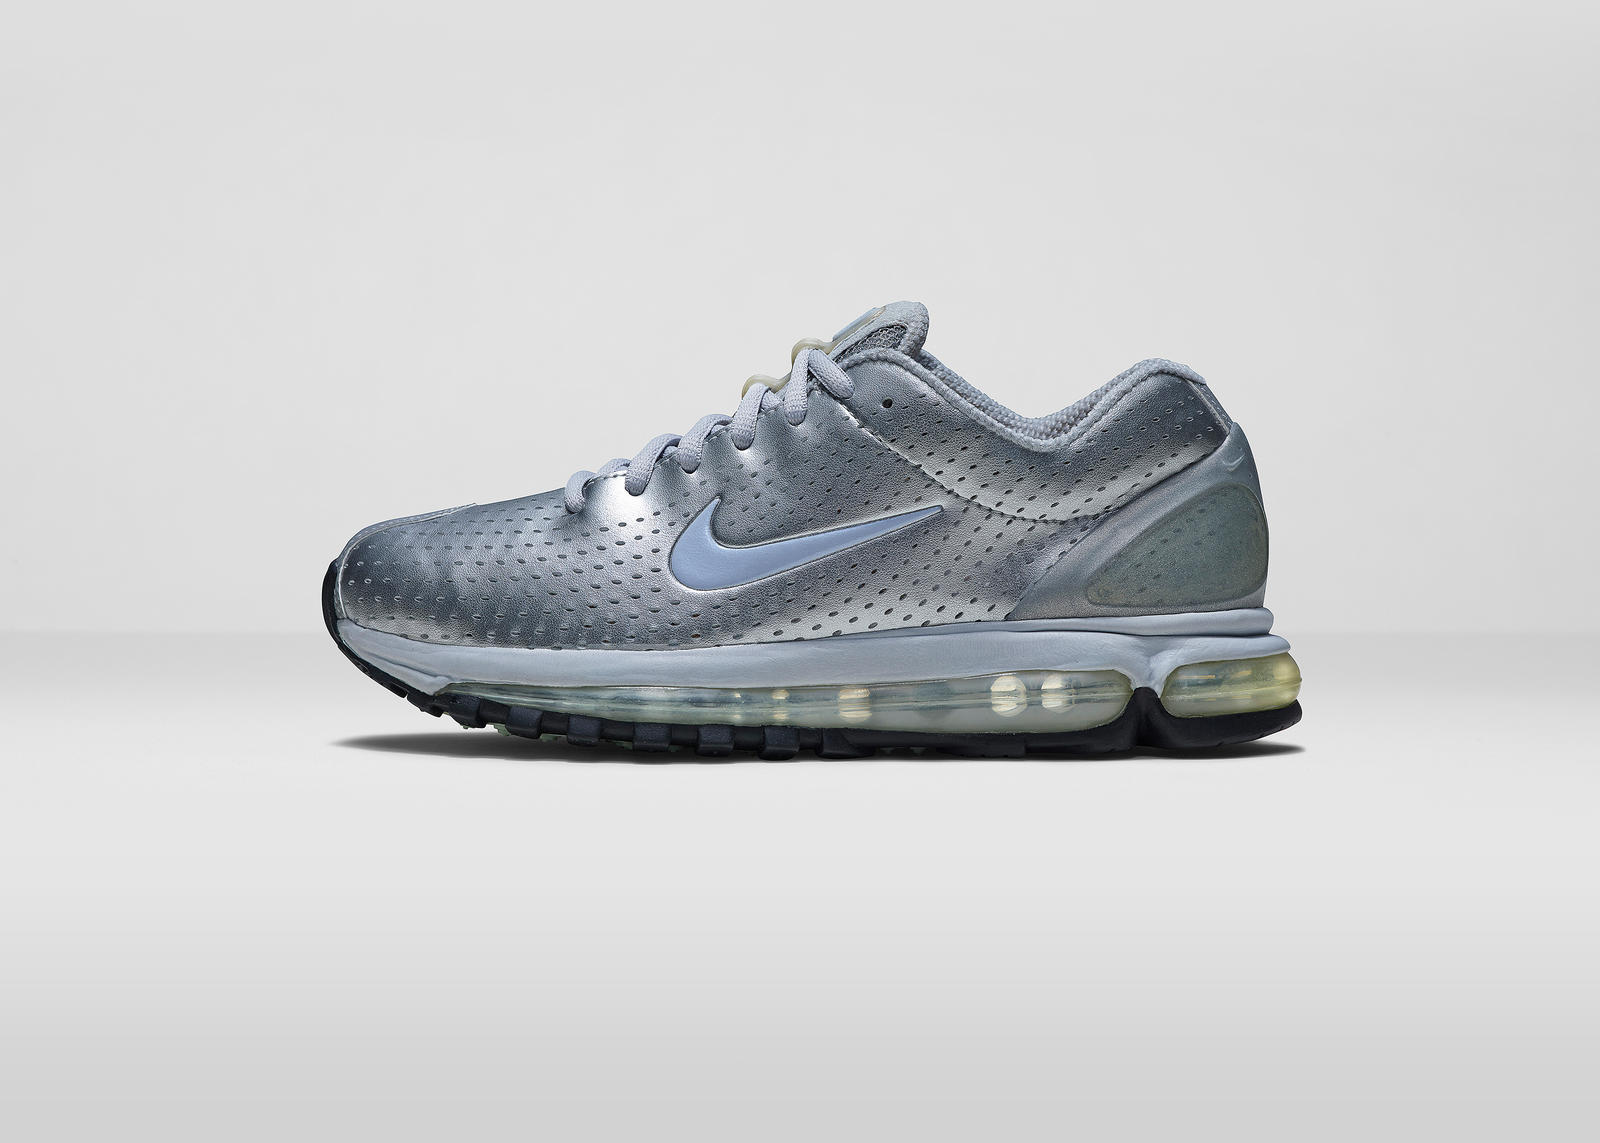 ad63212ccf3c Nike Air Max Day 2015 2003 Lat